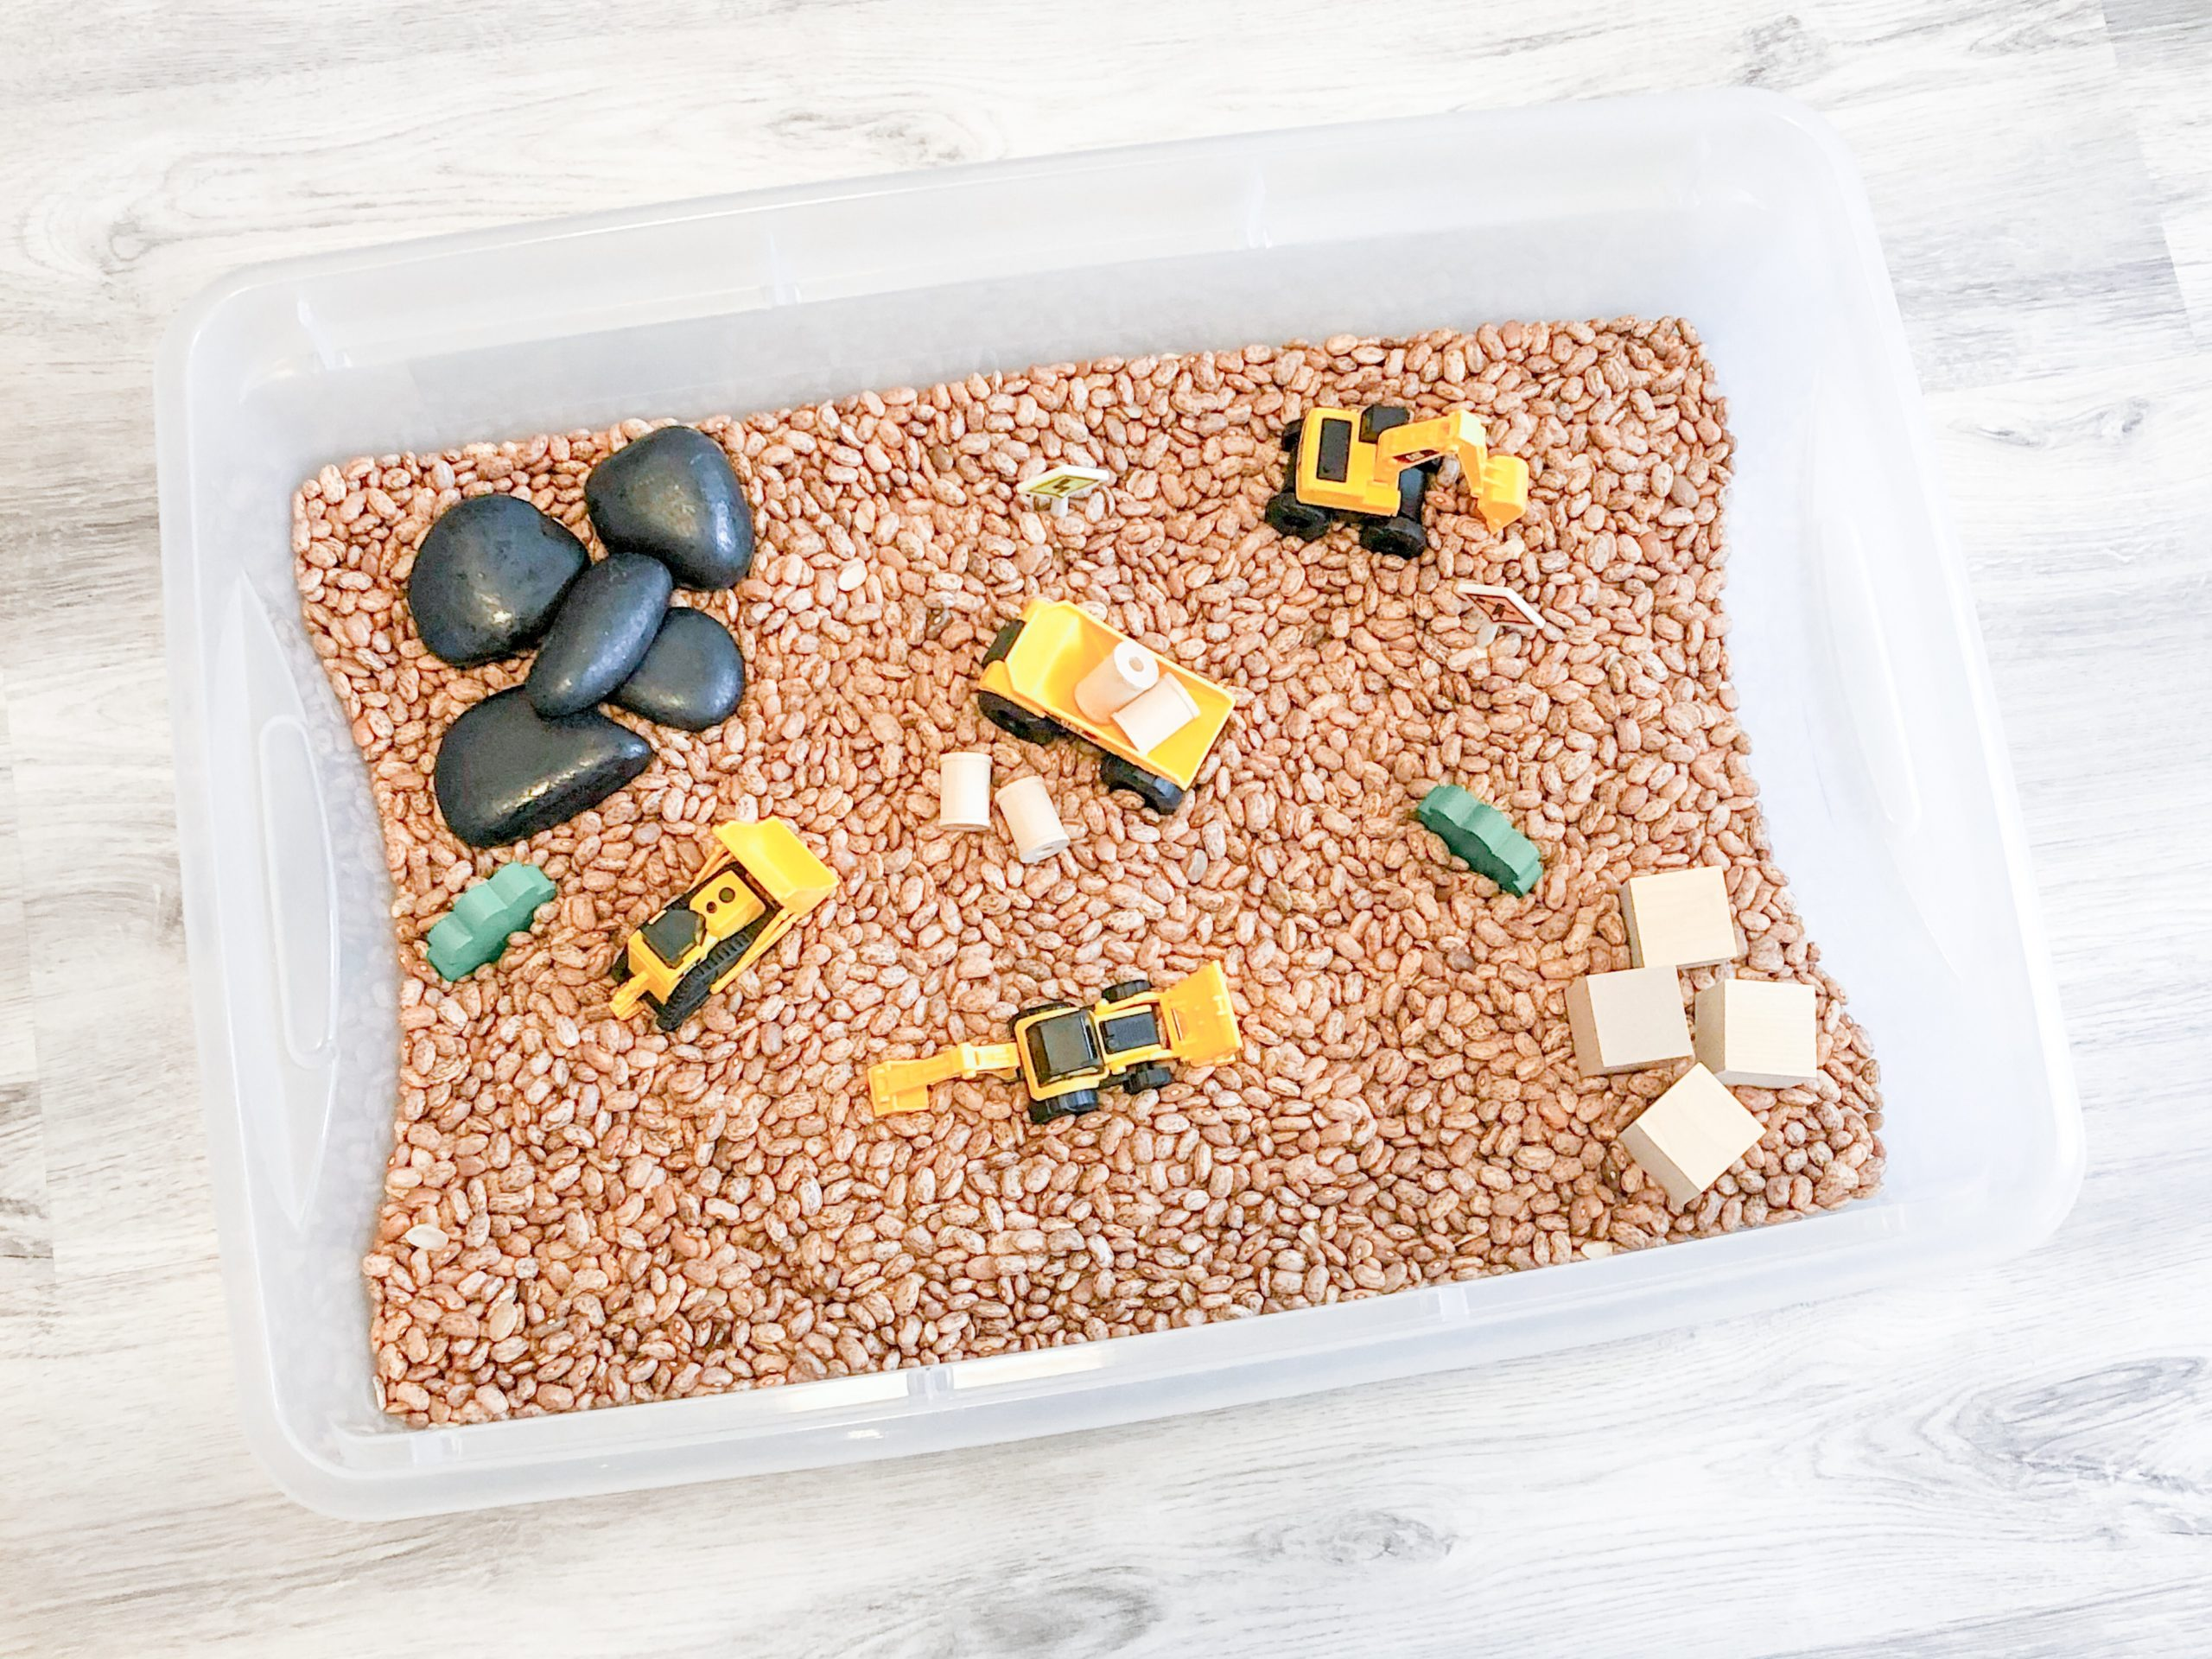 Construction sensory bin with pinto beans. An easy DIY sensory bin that is fun for a variety of ages.